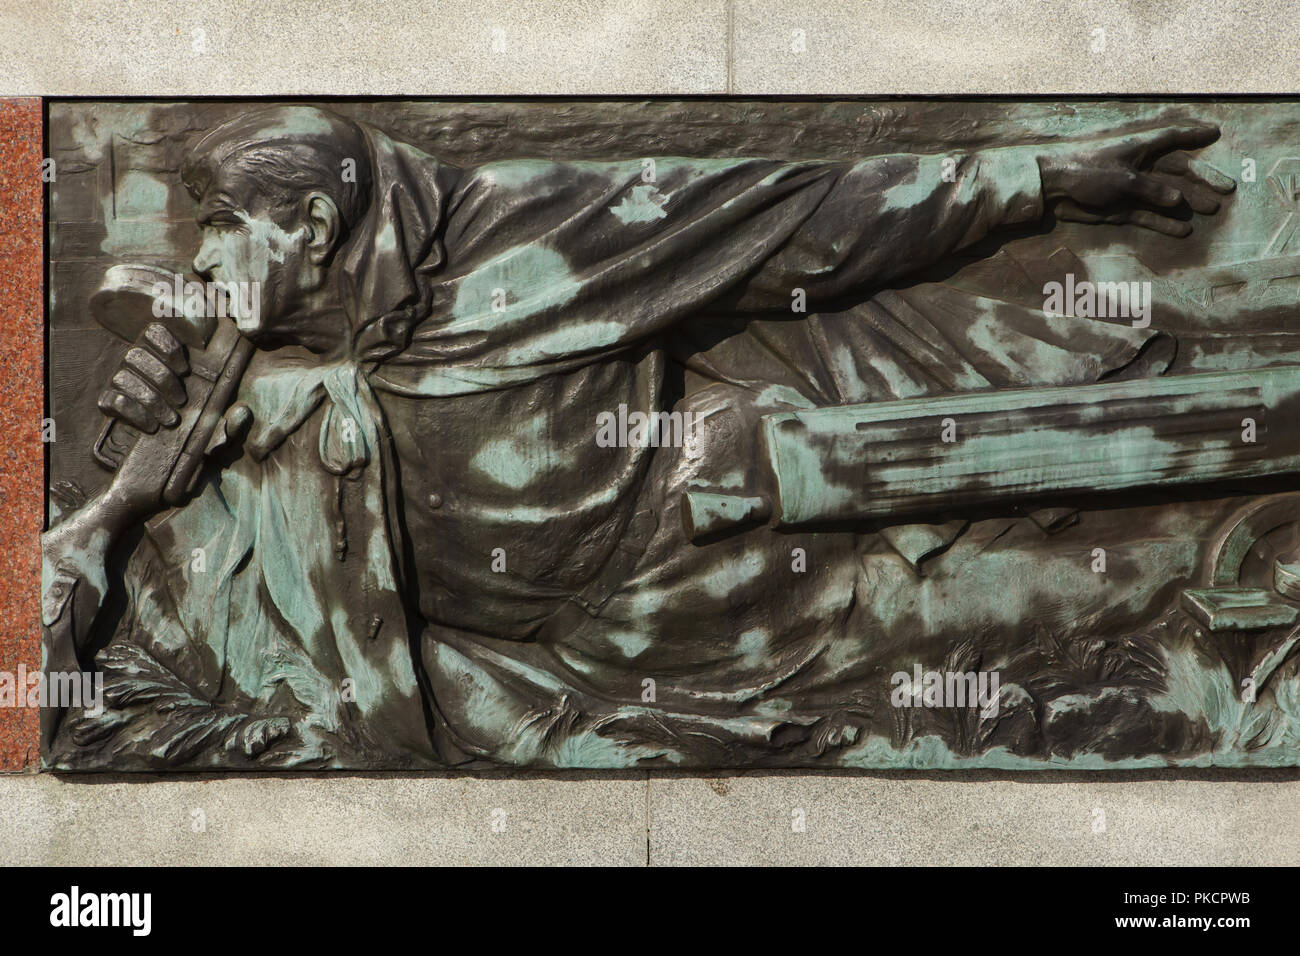 Red Army soldier depicted in the bronze relief by Czech sculptor Karel Vávra on the Red Army Memorial (Památník Rudé armády) in Ostrava, Czech Republic. The war memorial designed by Czech sculptors Karel Vávra and Konrád Babraj and Czech architect Jan Jírovec was built in 1945-1947 in the Komenského Gardens. The memorial also serves as a mausoleum for 656 Red Army soldiers fallen during the liberation of Ostrava in April 1945. - Stock Image